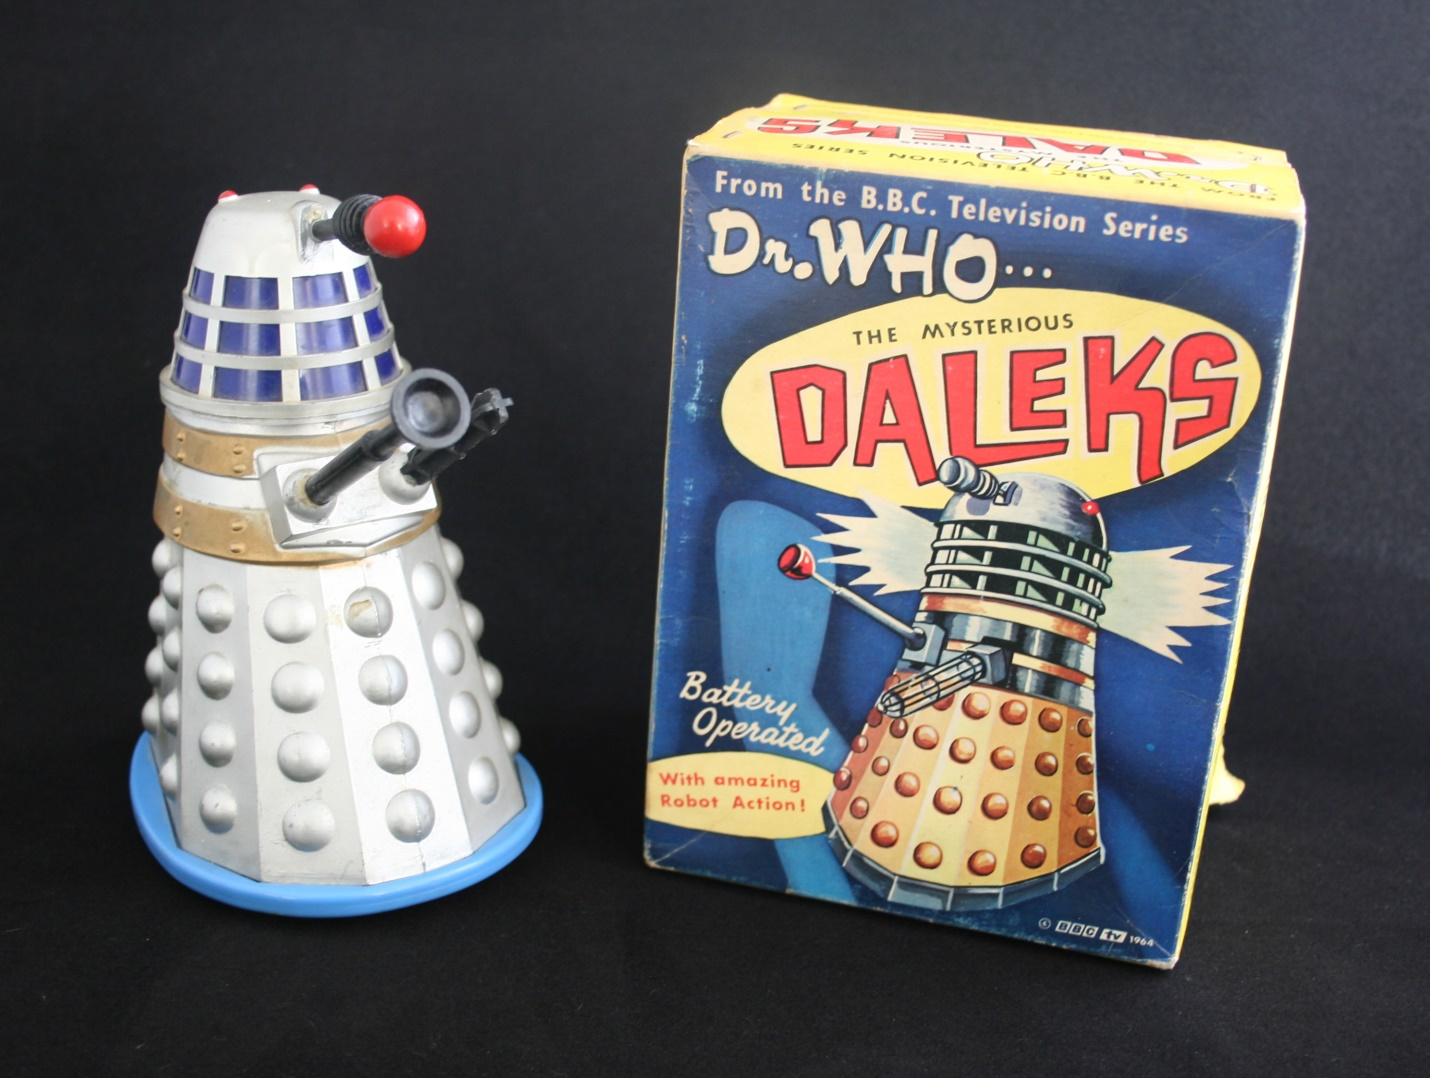 Louis Marx and Company Ltd., The Mysterious Daleks, a battery-operated toy with amazing robot action (second version with solid grey plastic body and blue base in first version of box).